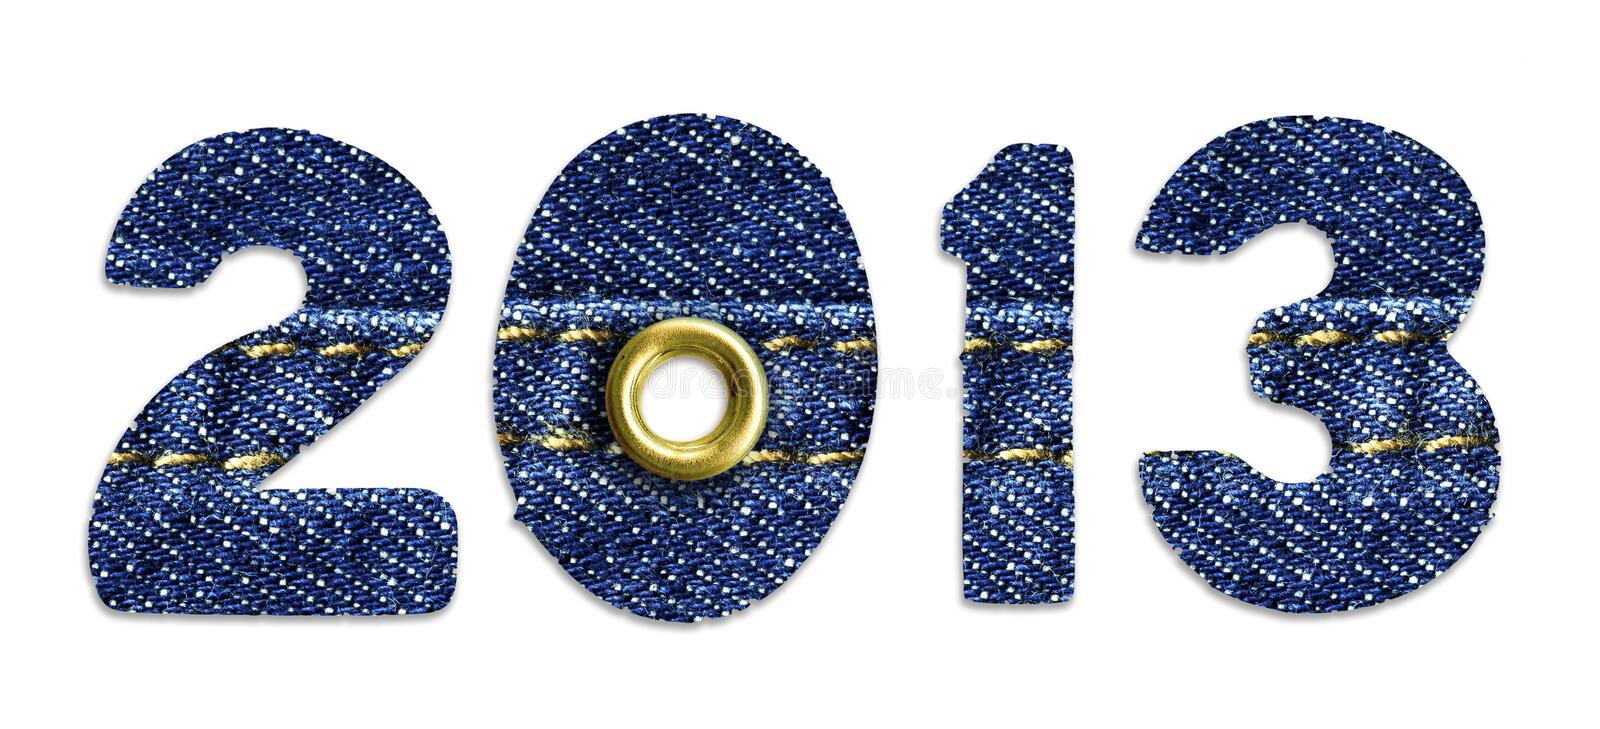 The New Year 2013 - blue jeans fonts royalty free stock images